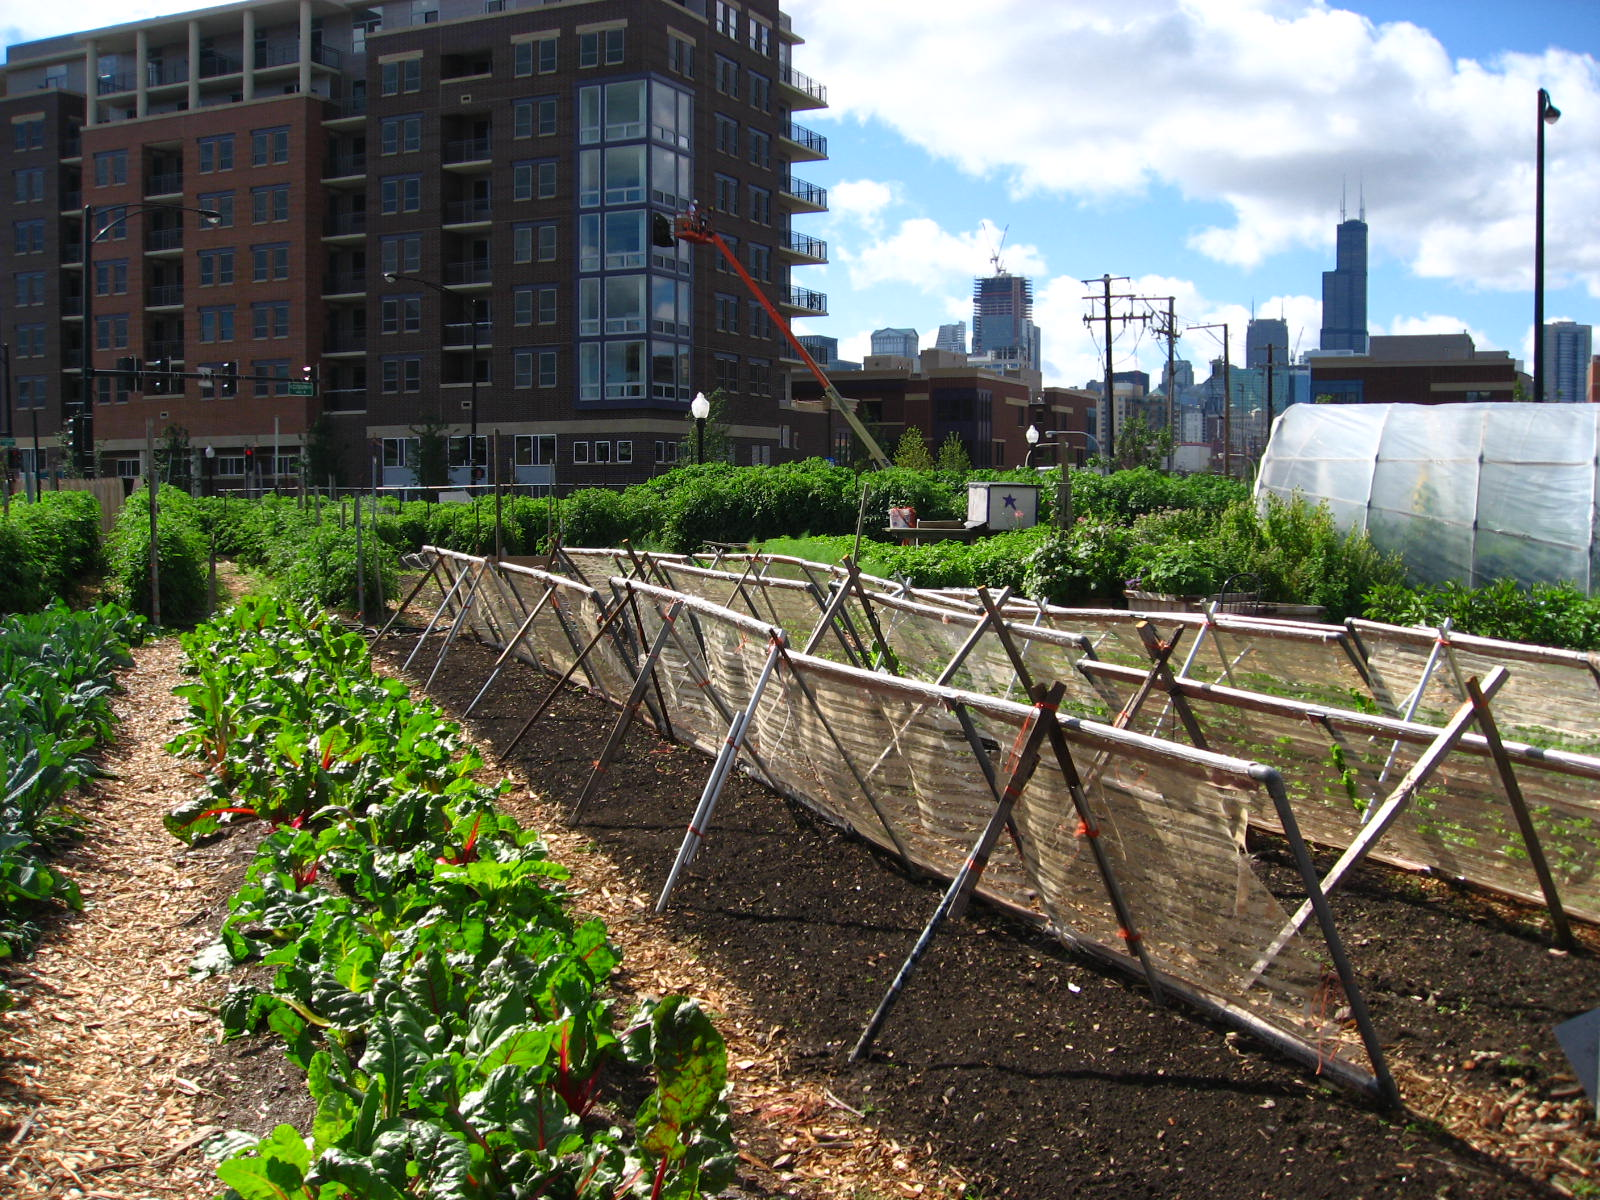 Food deserts, ecology, and social justice